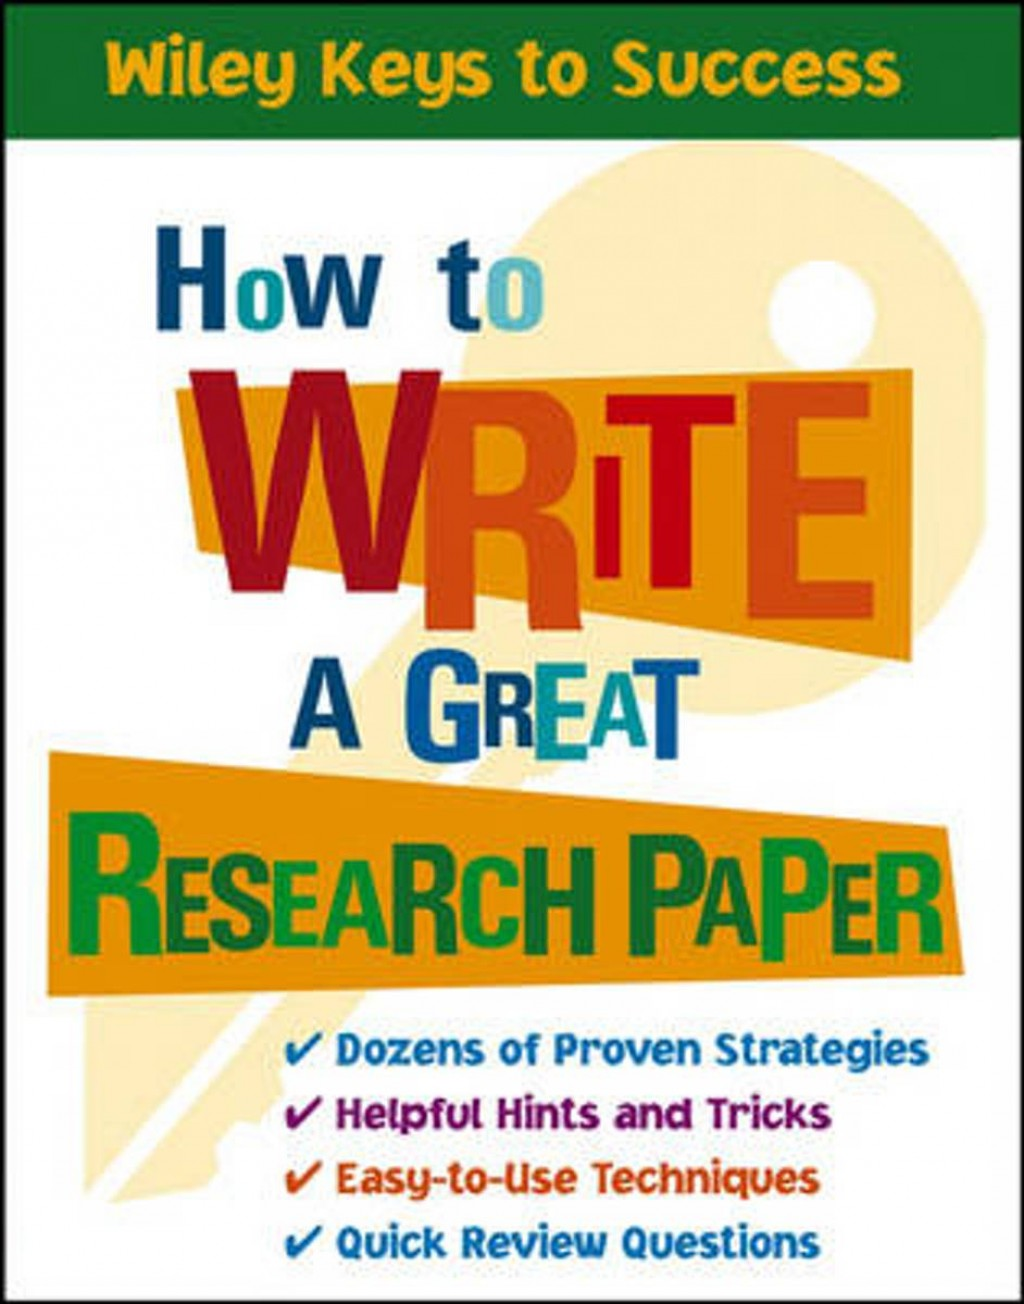 002 How To Write Great Research Paper Wiley Keys Success Archaicawful A (wiley Success) Large